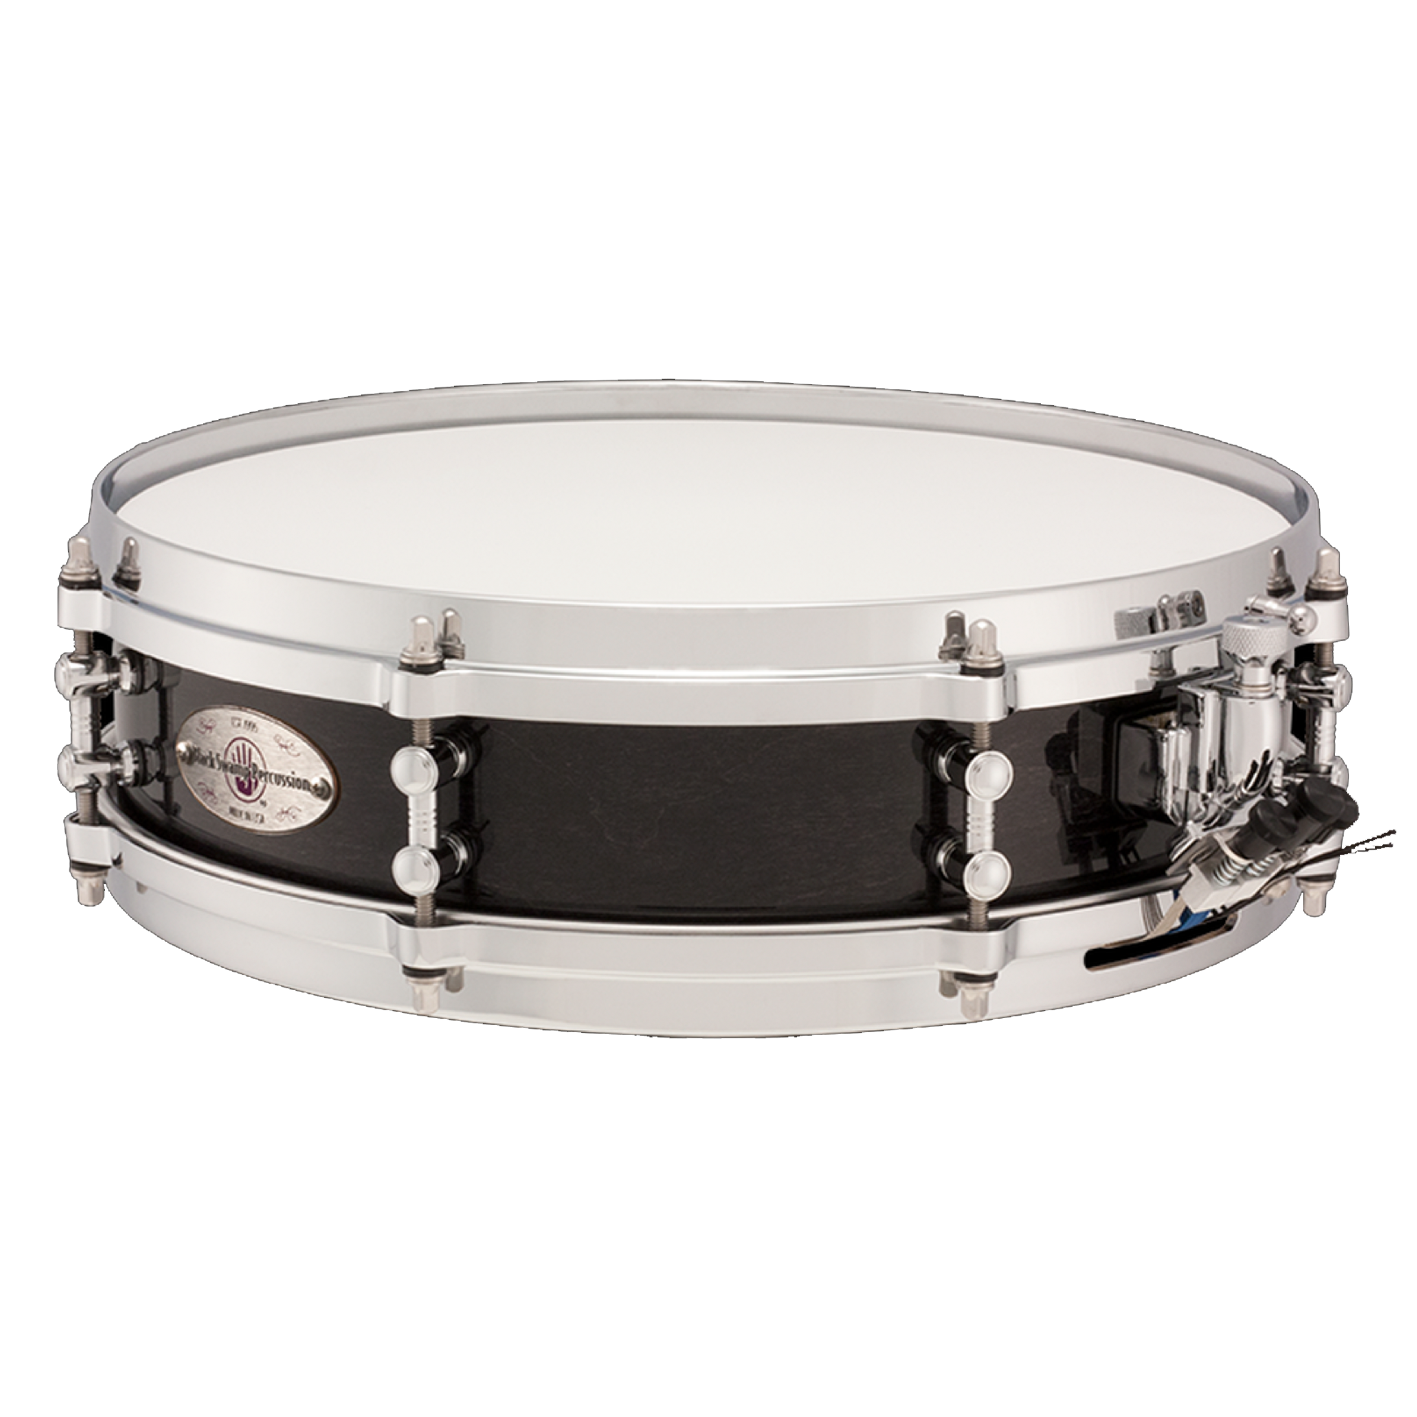 "Black Swamp - 3.5"" x 13"" 7-Ply Maple Mercury Series Snare Drum-Percussion Accessories-Black Swamp-Music Elements"